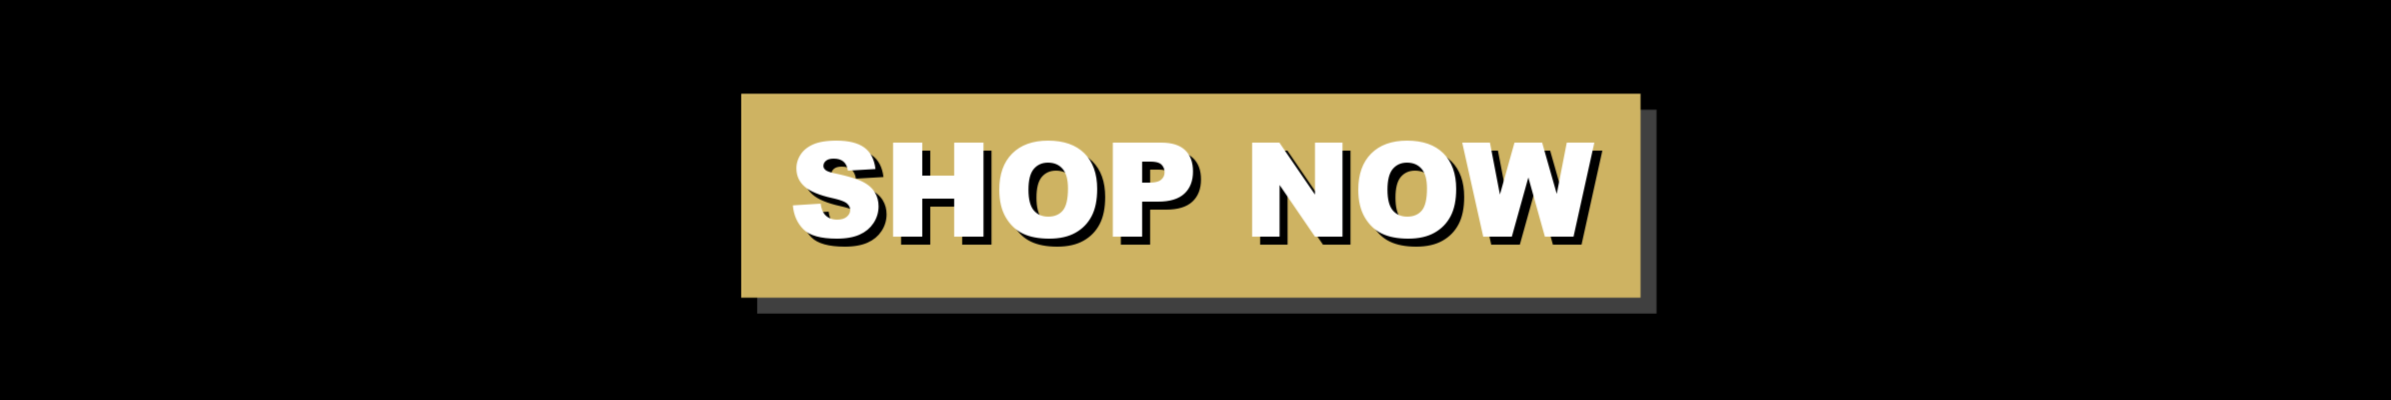 Shop Now (2).png